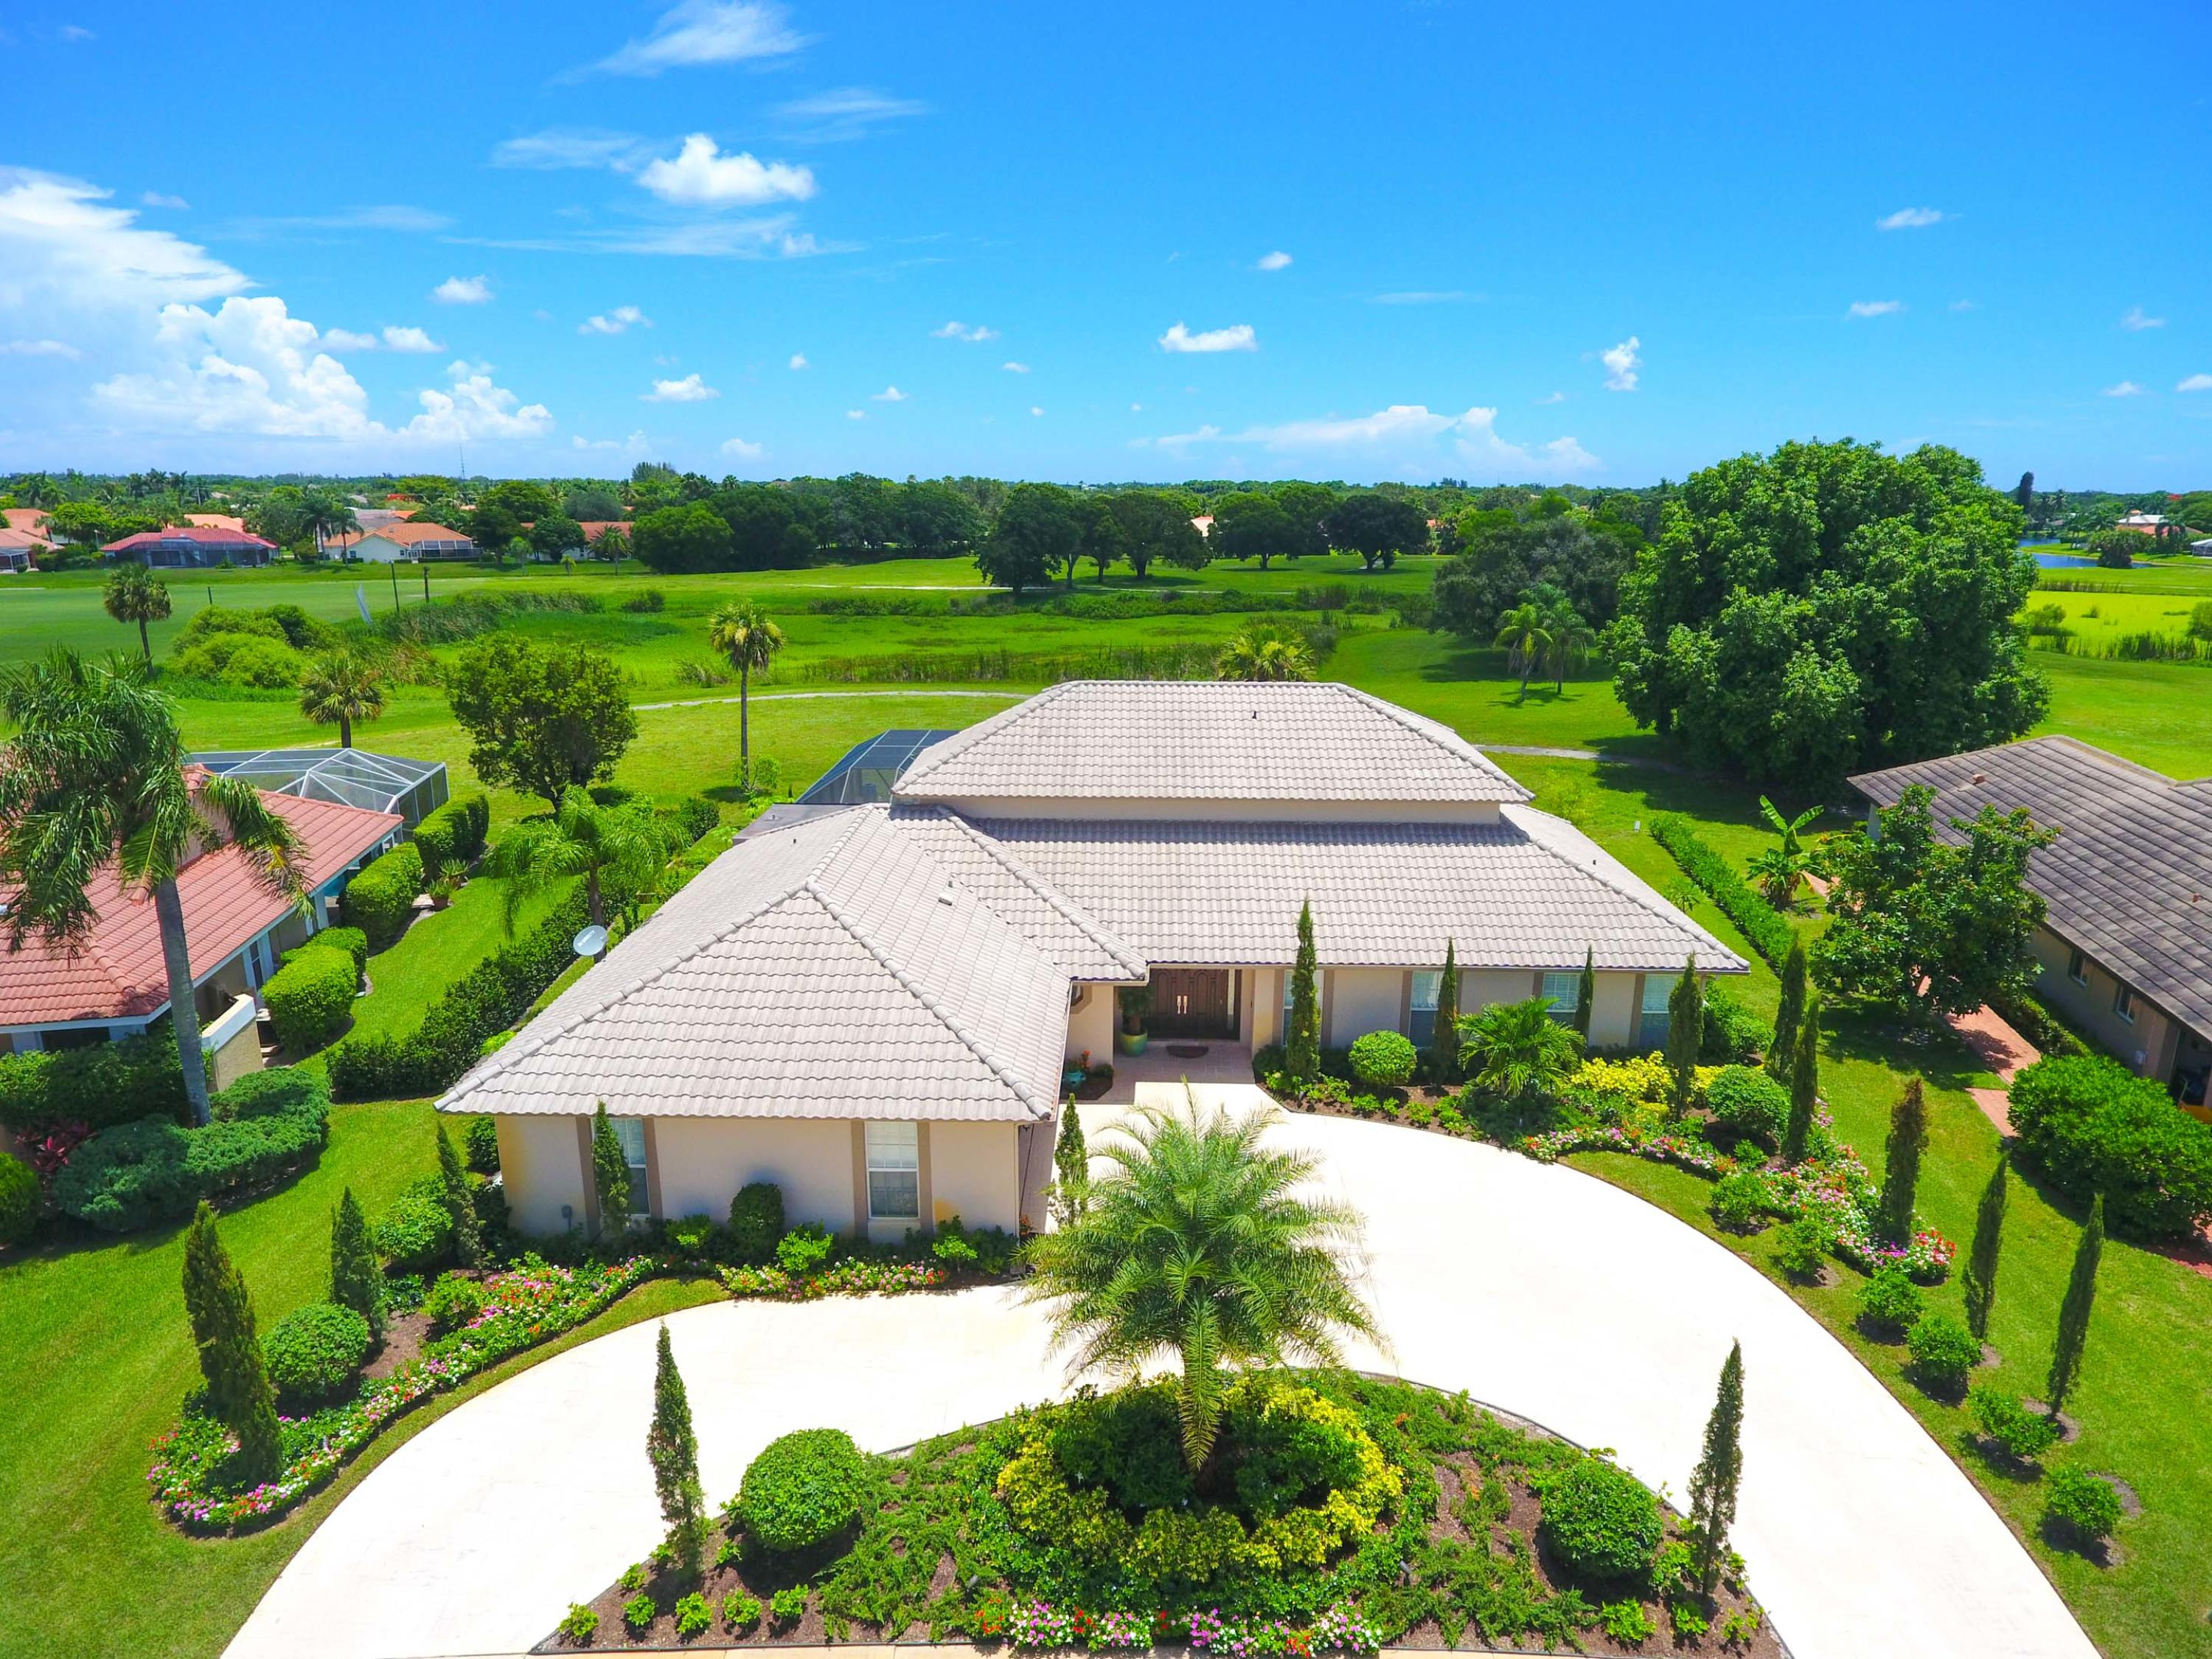 2232 Sunderland Avenue, Wellington, Florida 33414, 4 Bedrooms Bedrooms, ,3.1 BathroomsBathrooms,Single Family,For Rent,POLO WEST - GREENVIEW COVE,Sunderland,1,RX-10466761